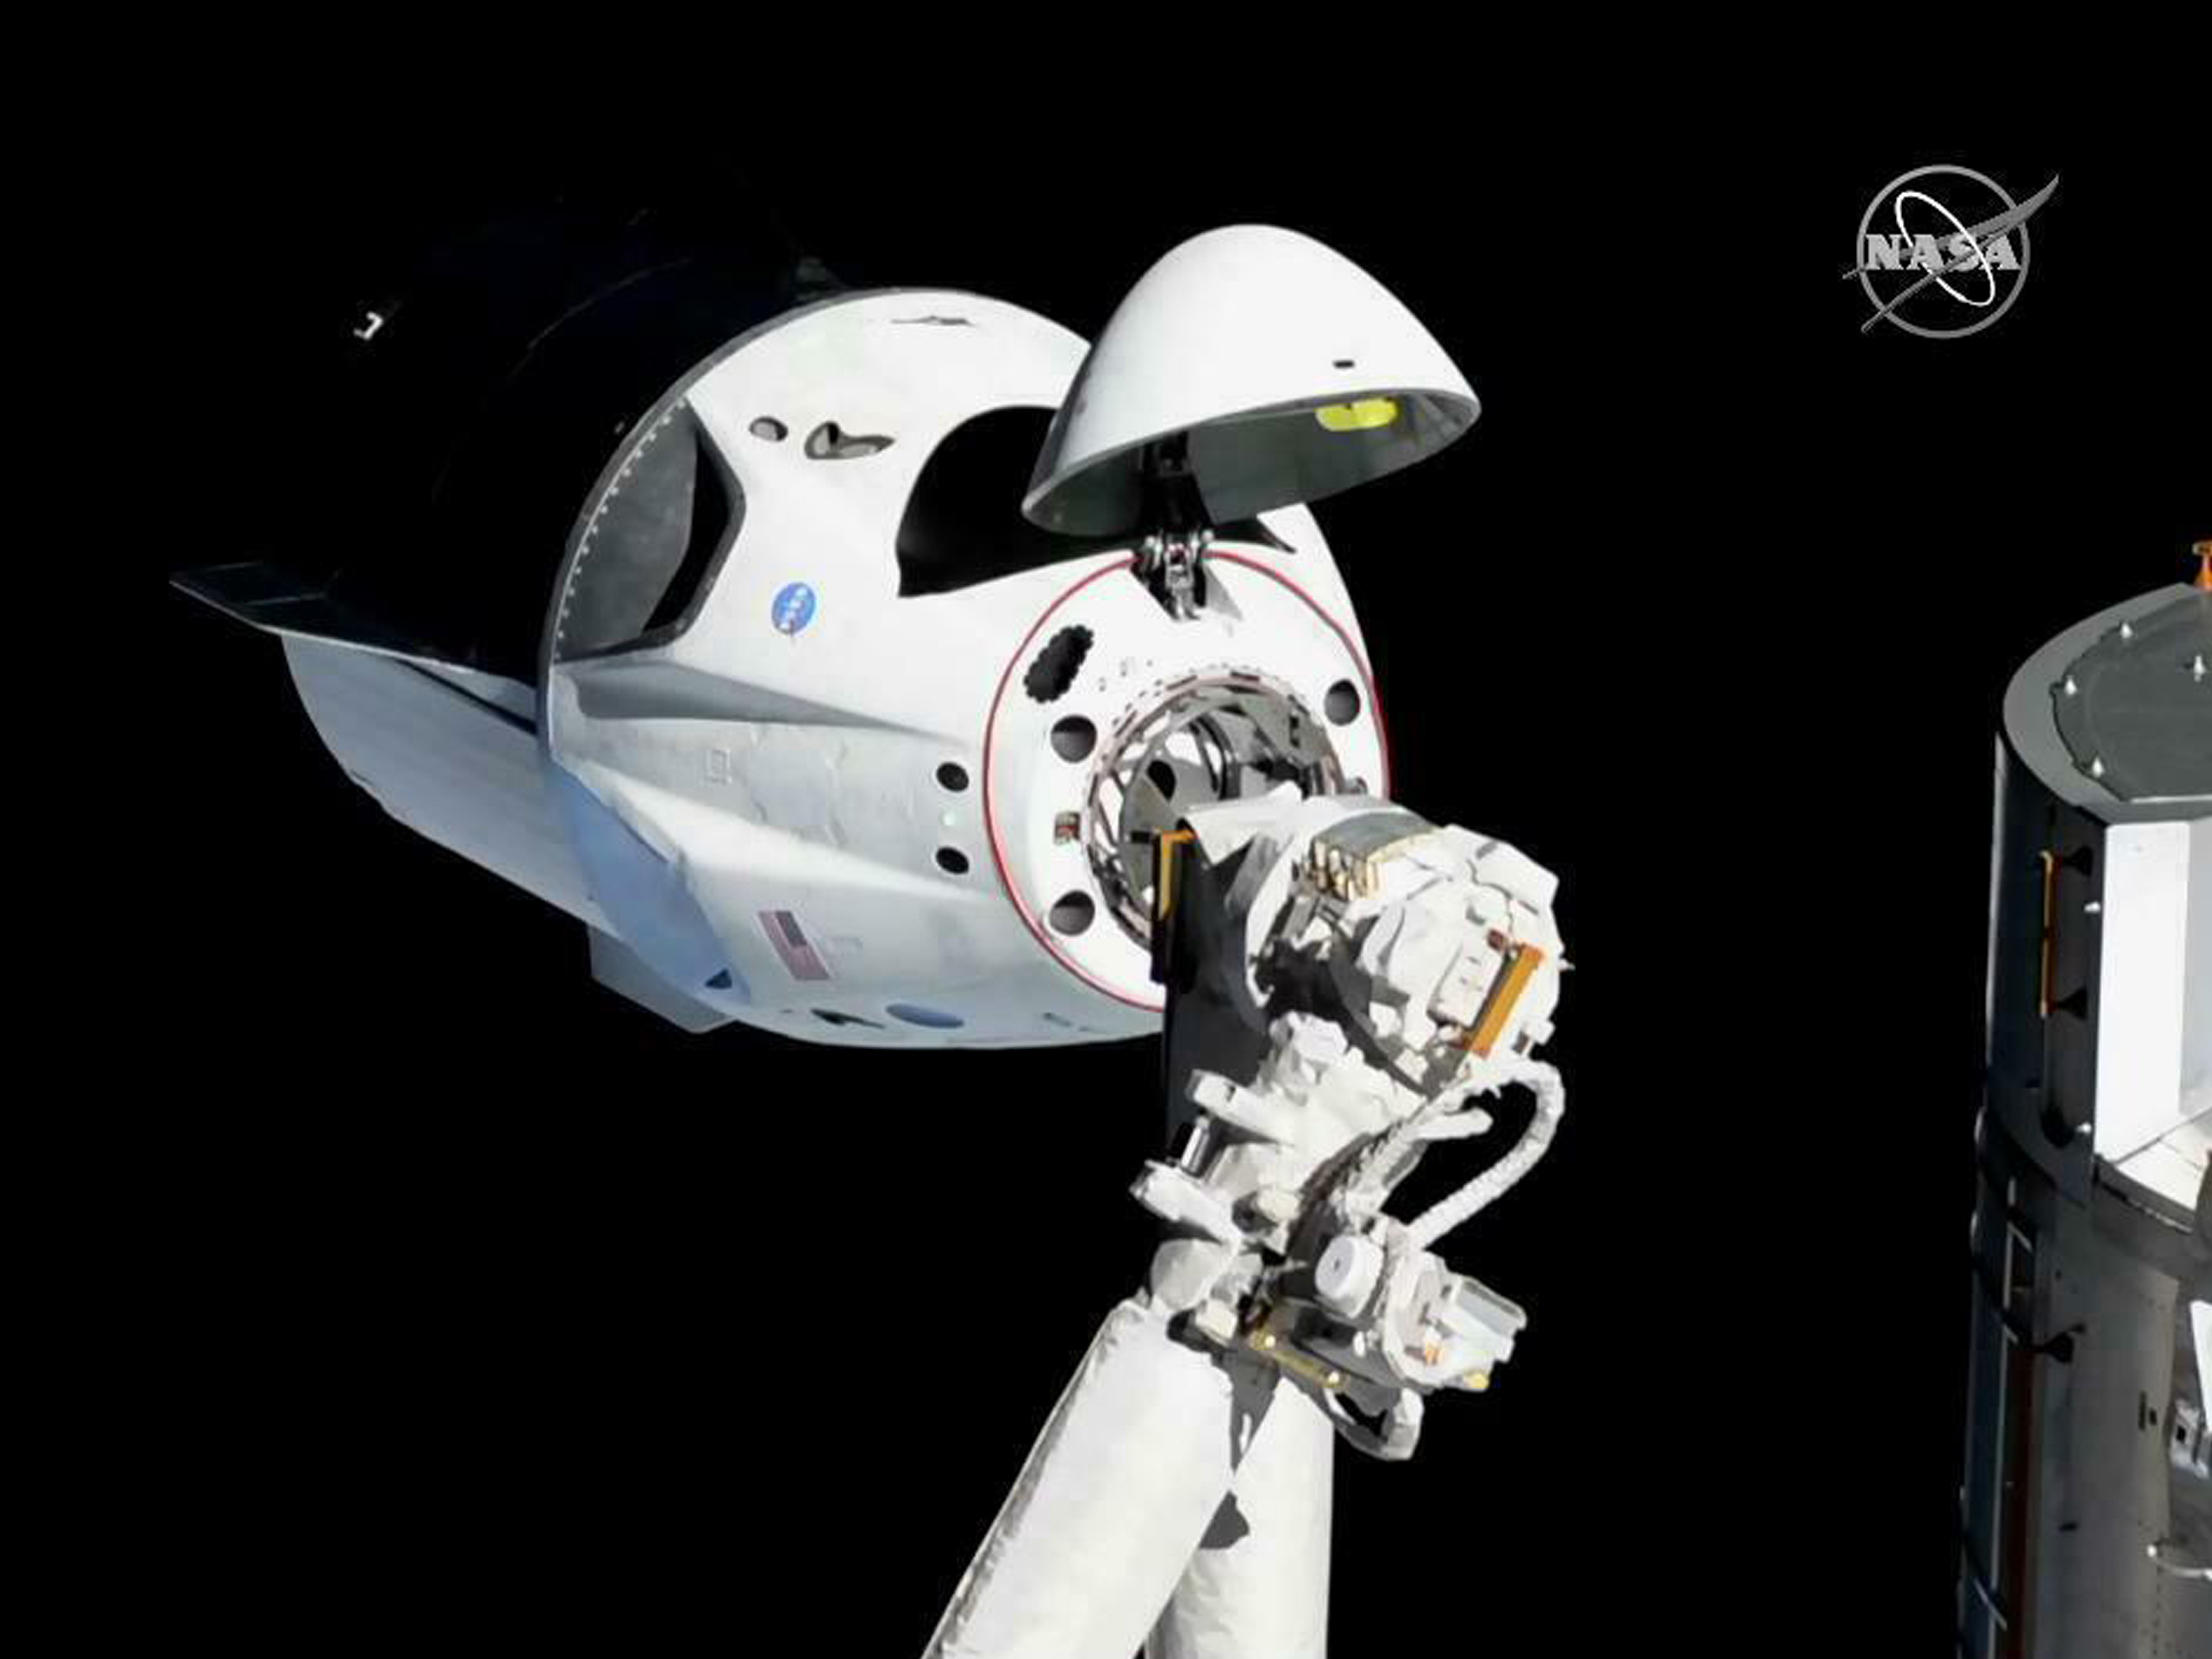 SpaceX capsule docks with space station